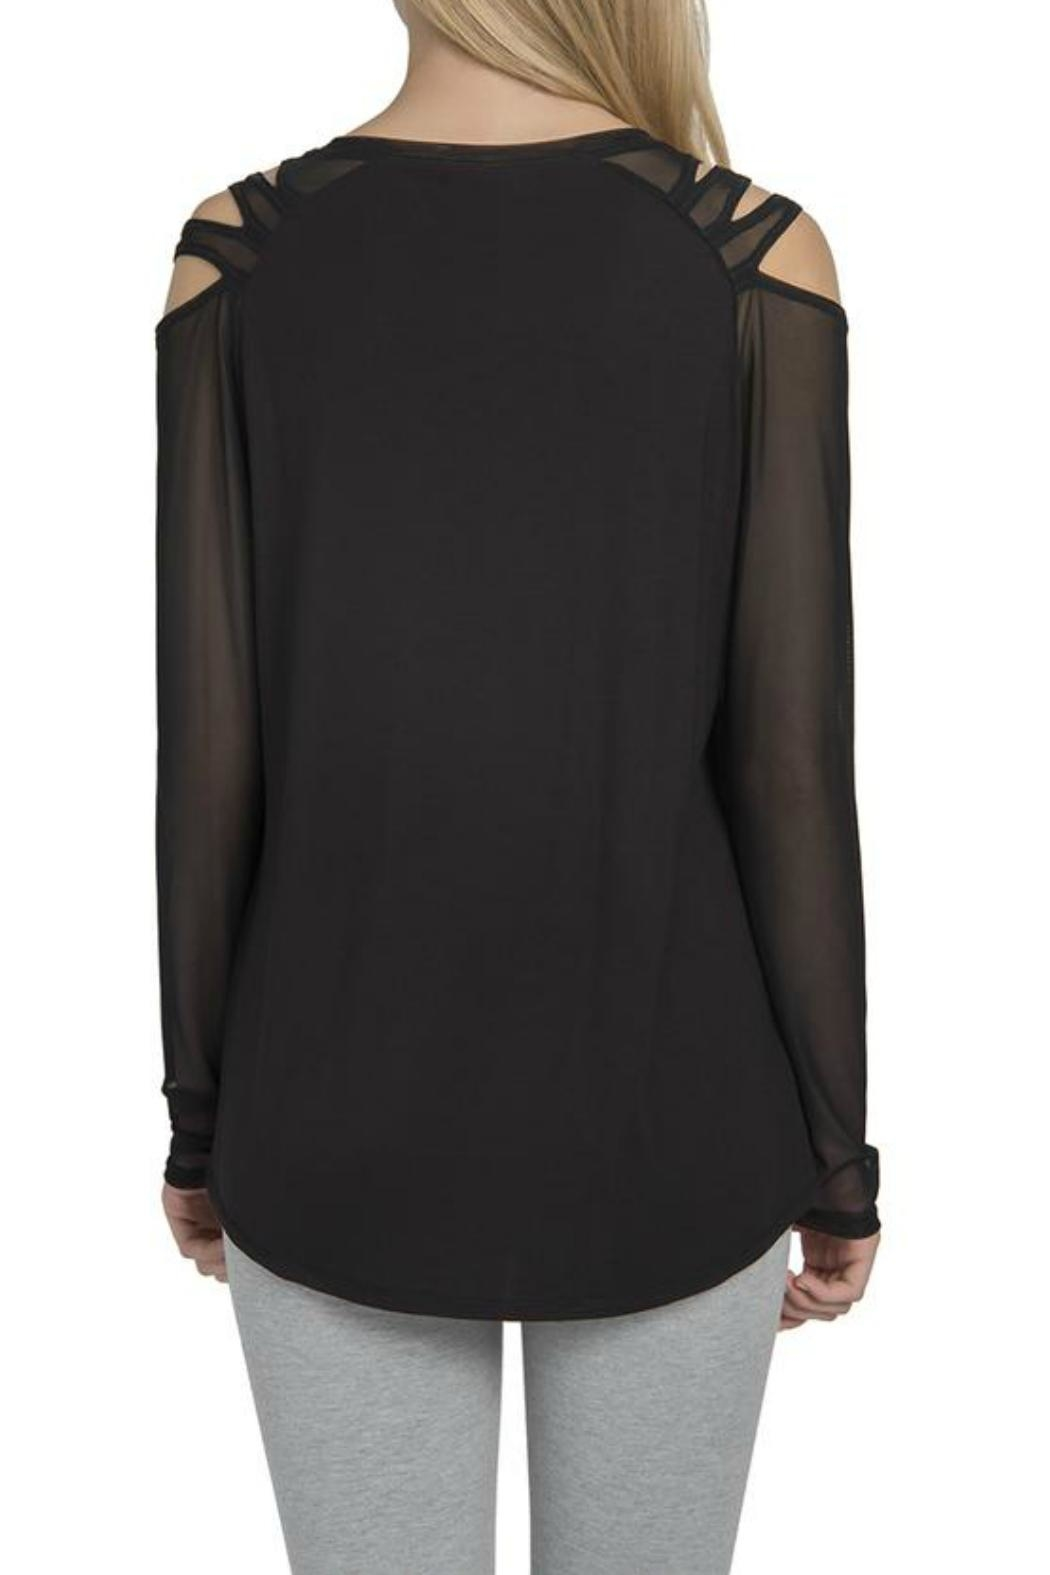 Lysse Aster Cutout Top - Side Cropped Image